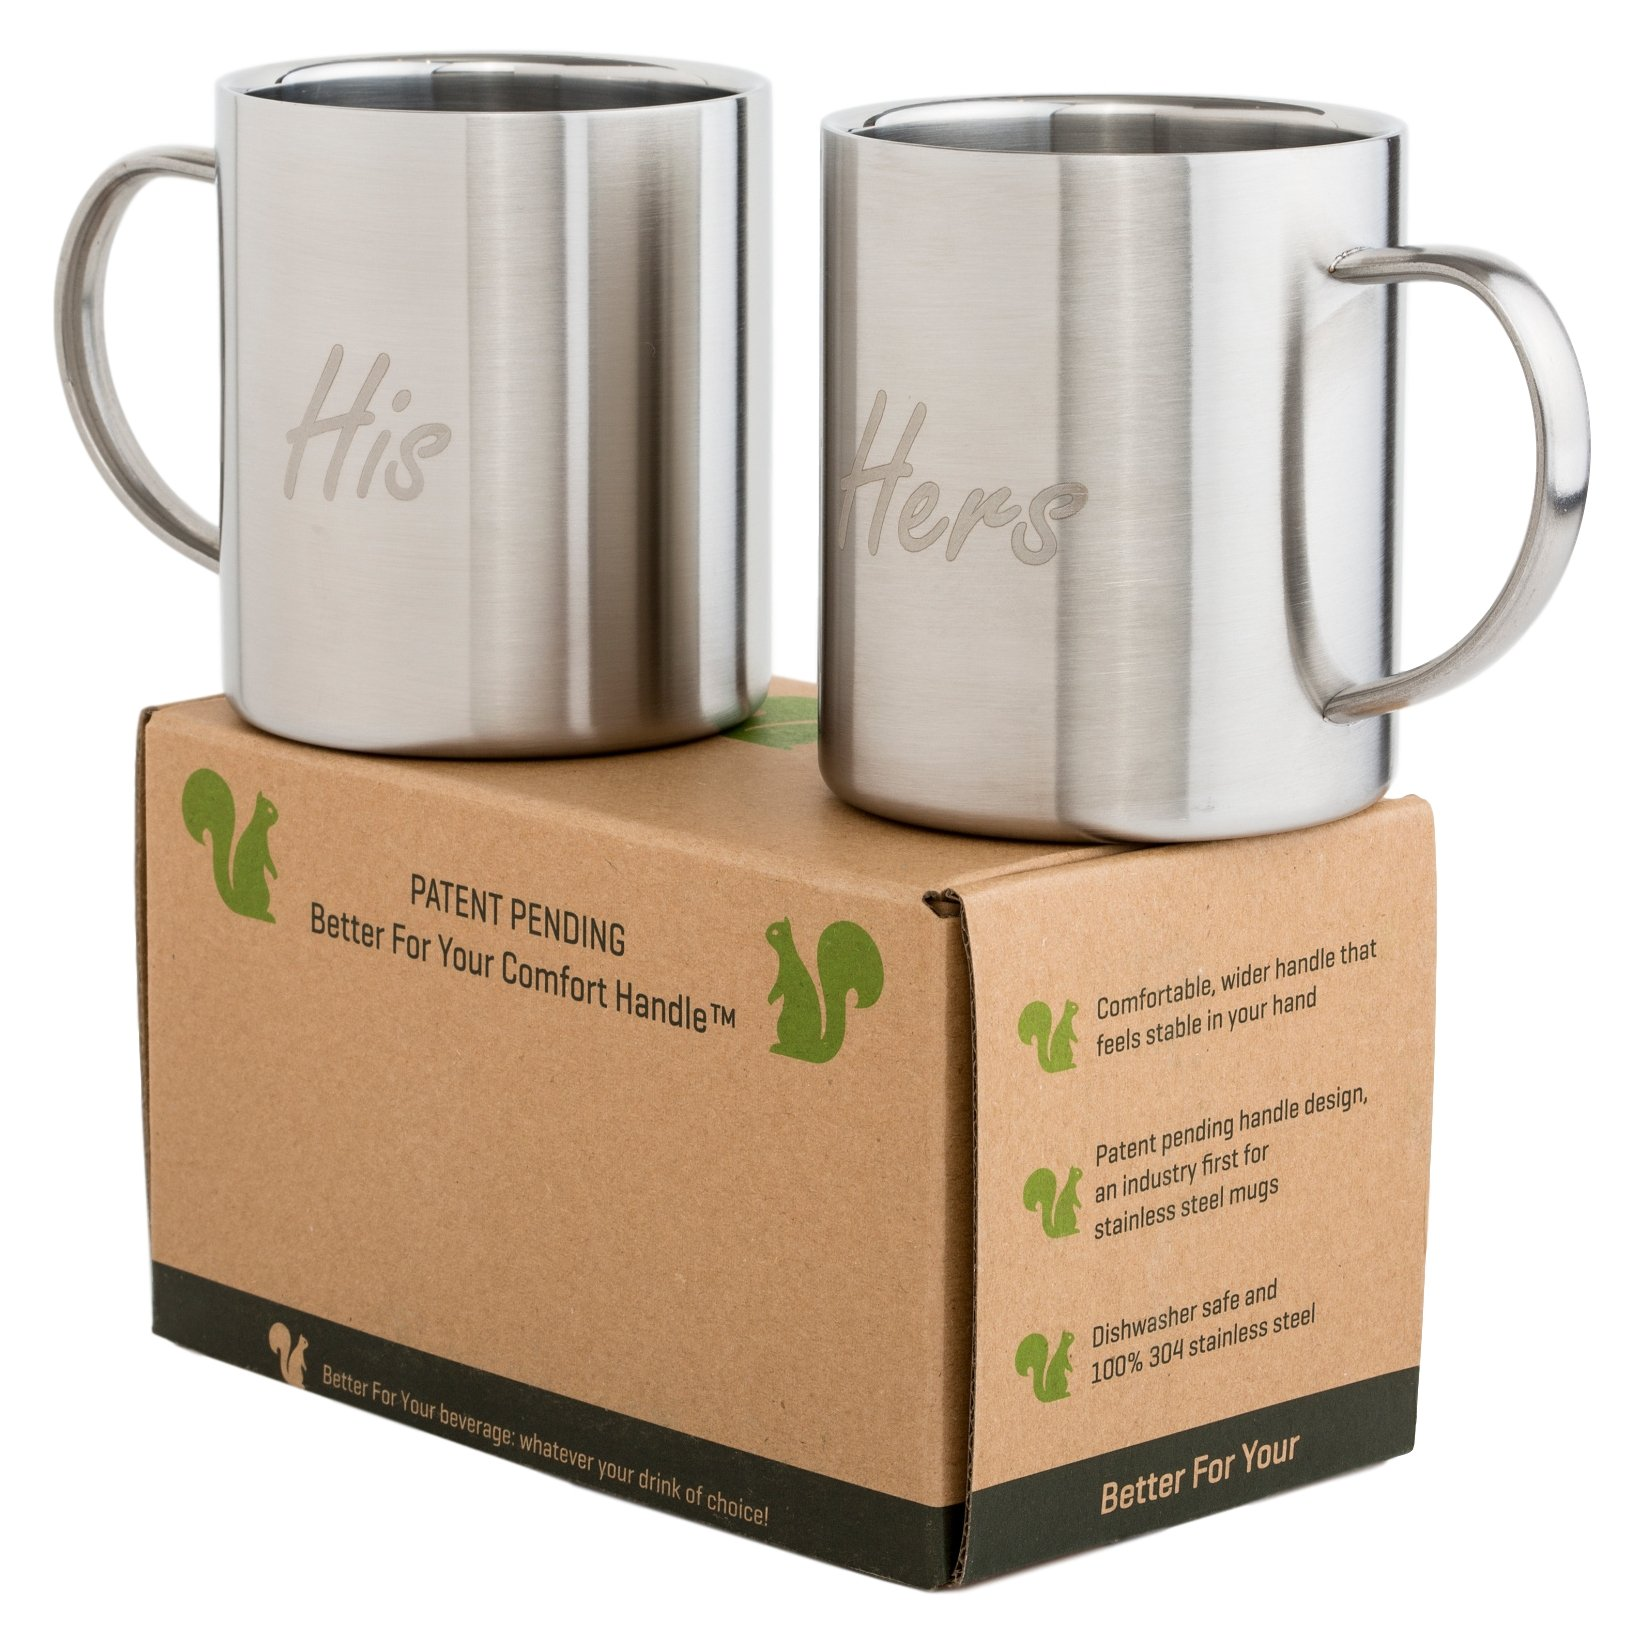 Coffee Mugs His & Hers Stainless Steel - Oval Handle for Best Comfort - Double Wall 13.5oz Metal Coffee Mug Tea Cup - for Home Camping Outdoors RV Gift - Shatterproof Dishwasher Safe